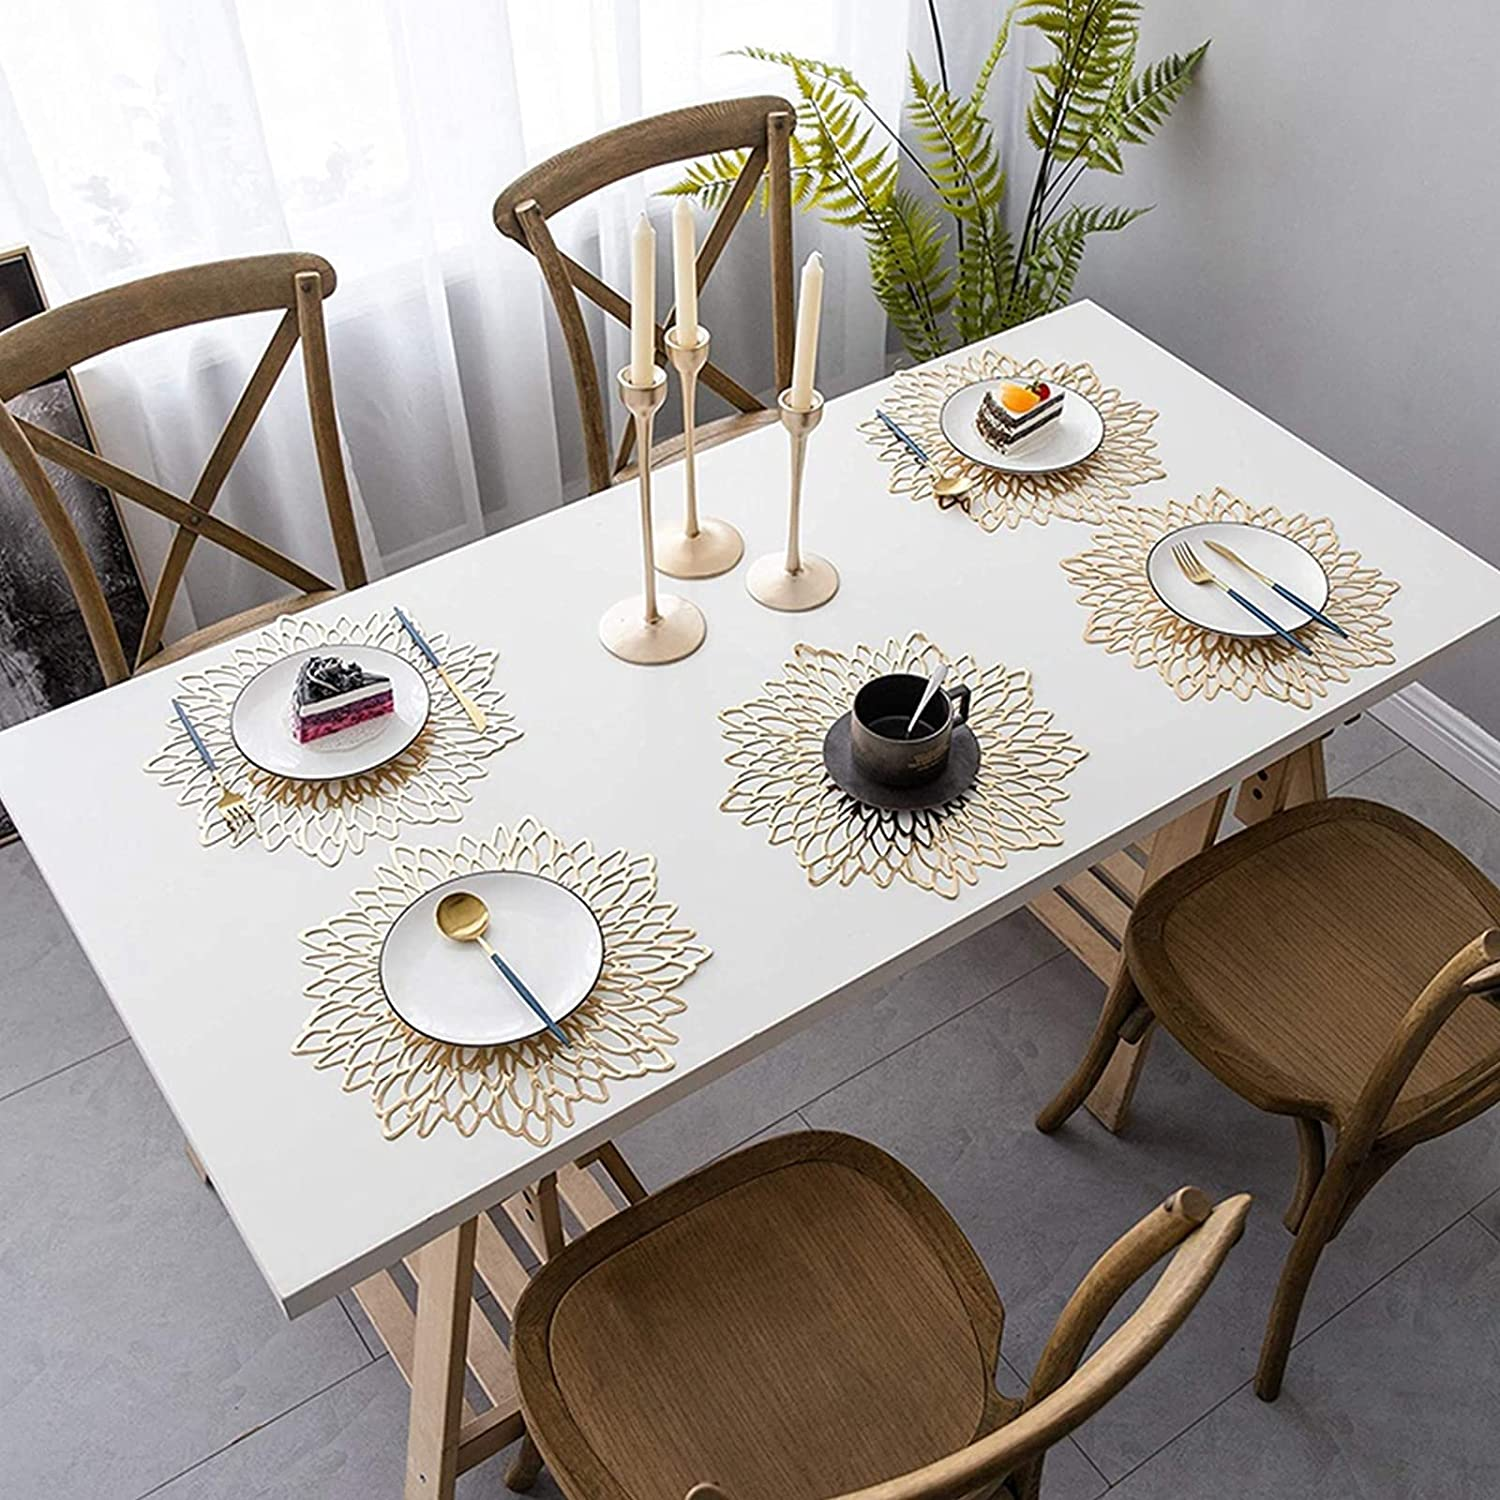 Buy 9PCS Pressed Vinyl Metallic Placemats and Coaster Sets,Round ...